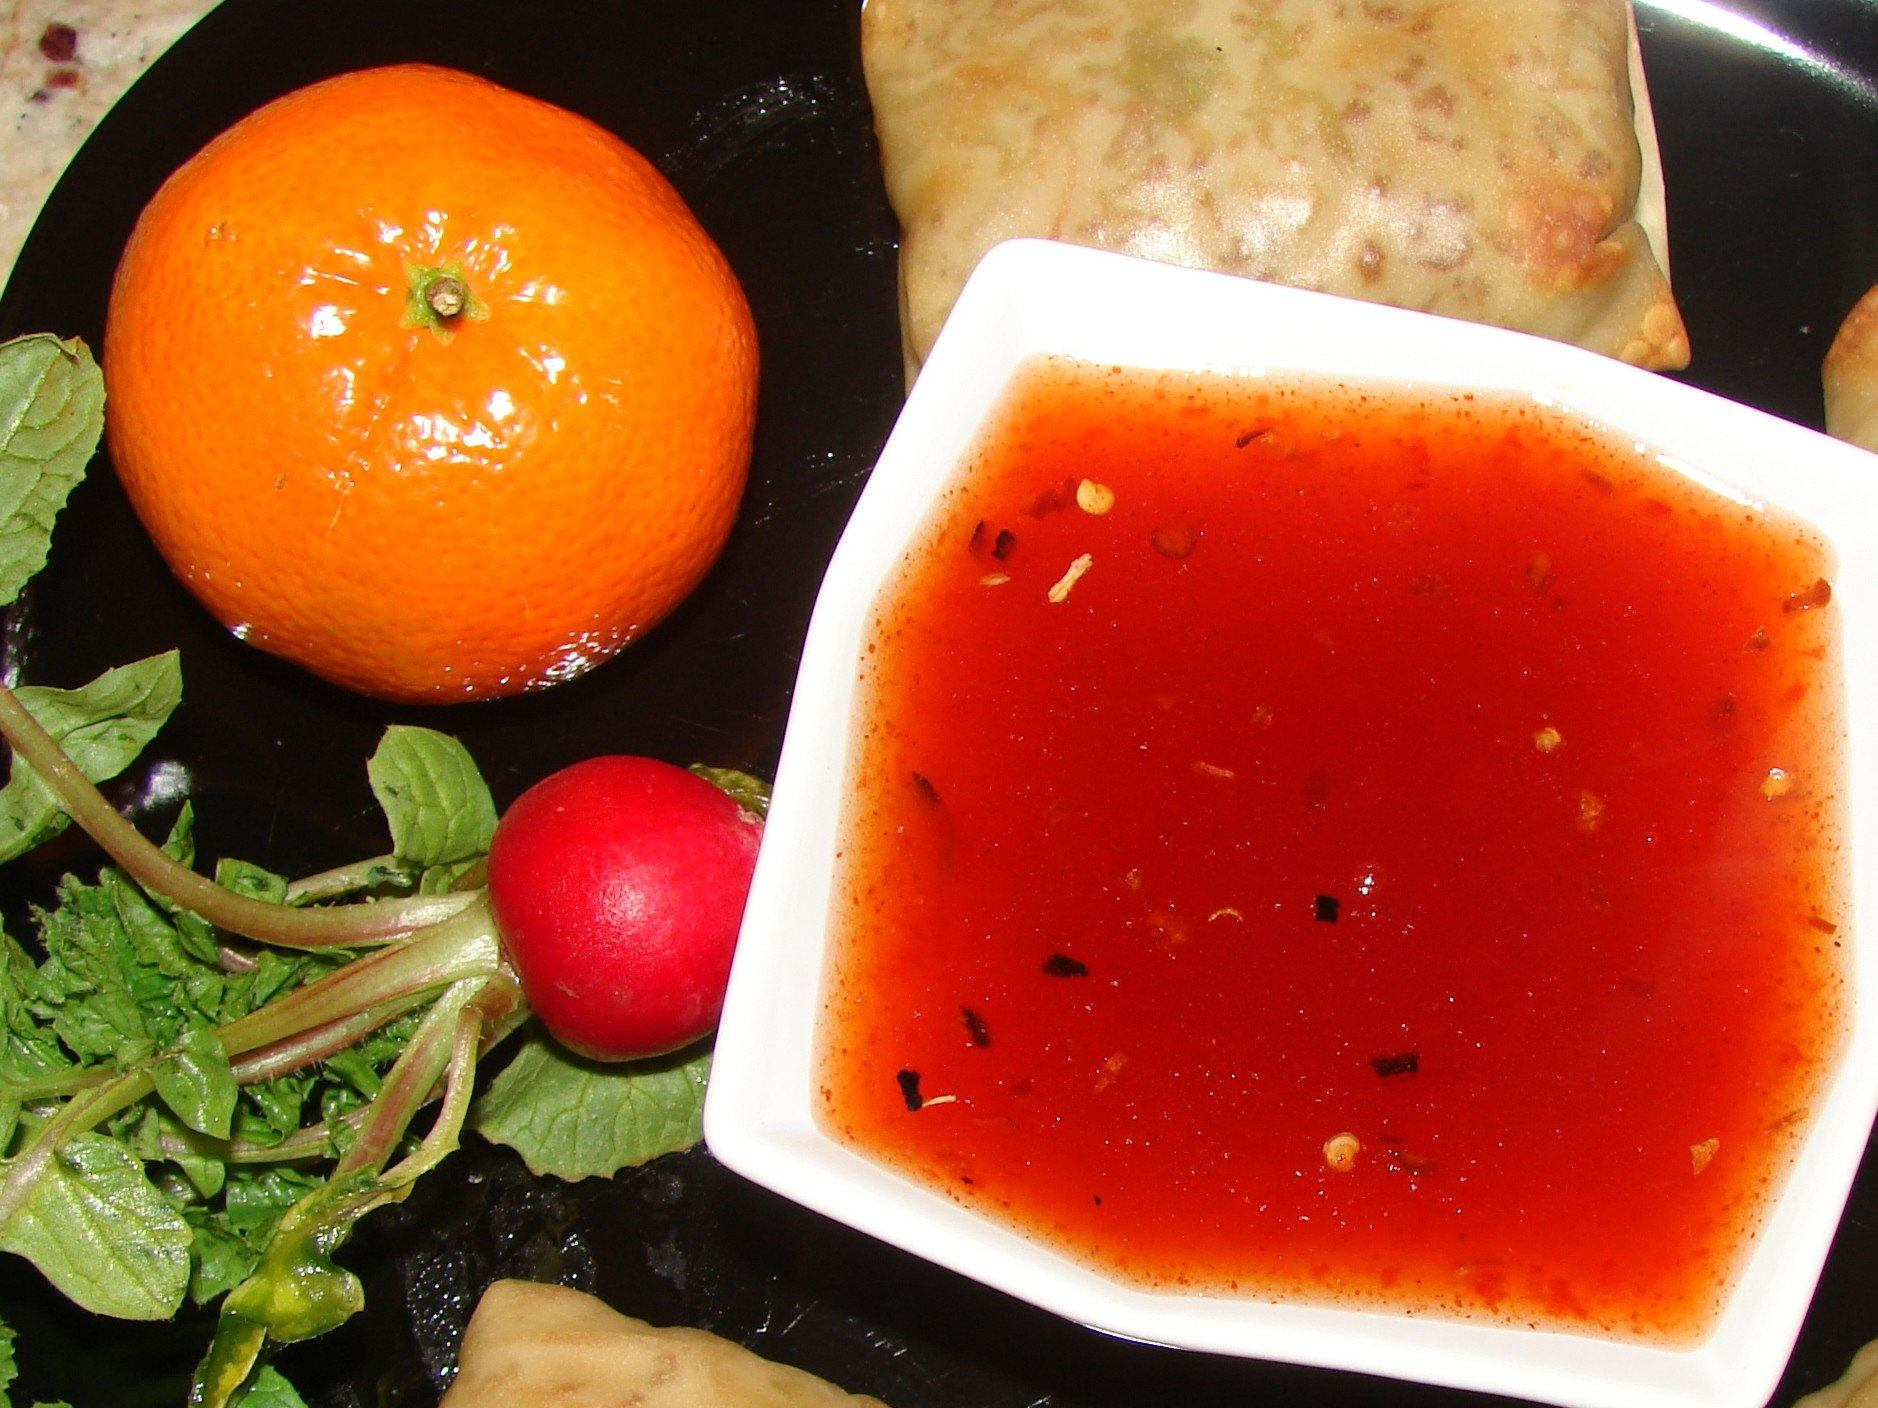 Chugwater Chili Red Pepper Jelly Sauce